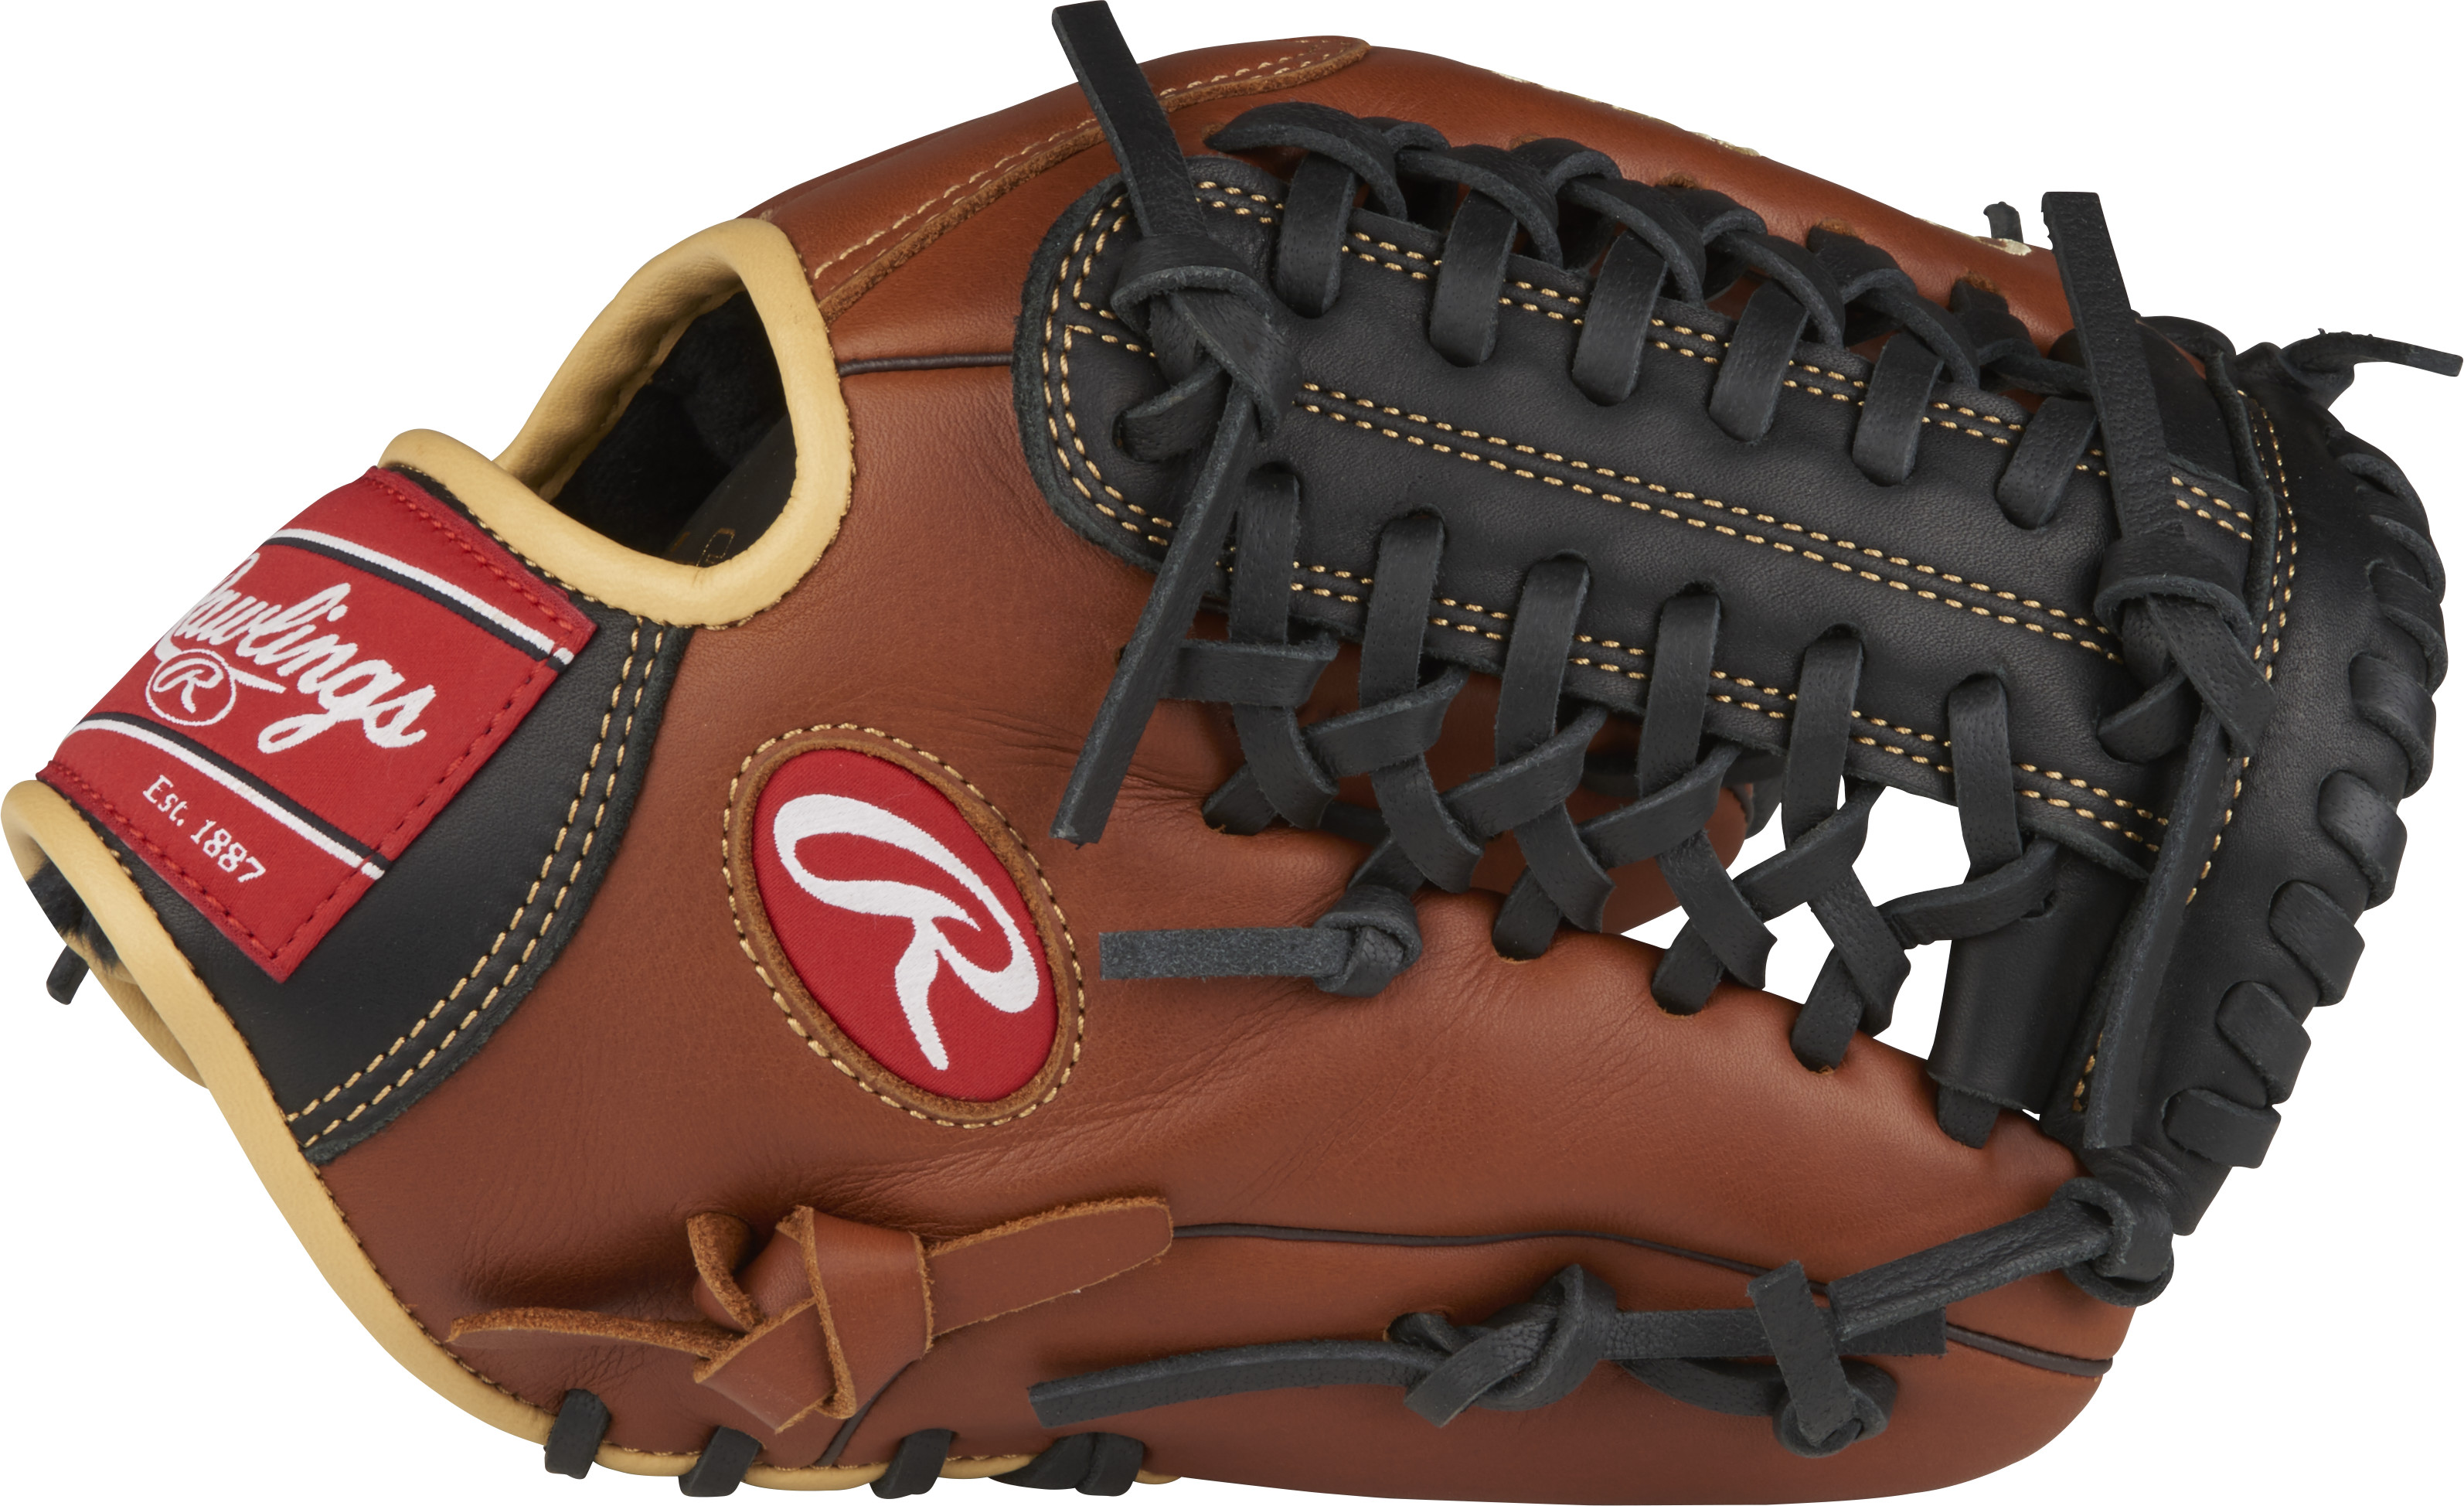 http://www.bestbatdeals.com/images/gloves/rawlings/S1175MT-3.jpg